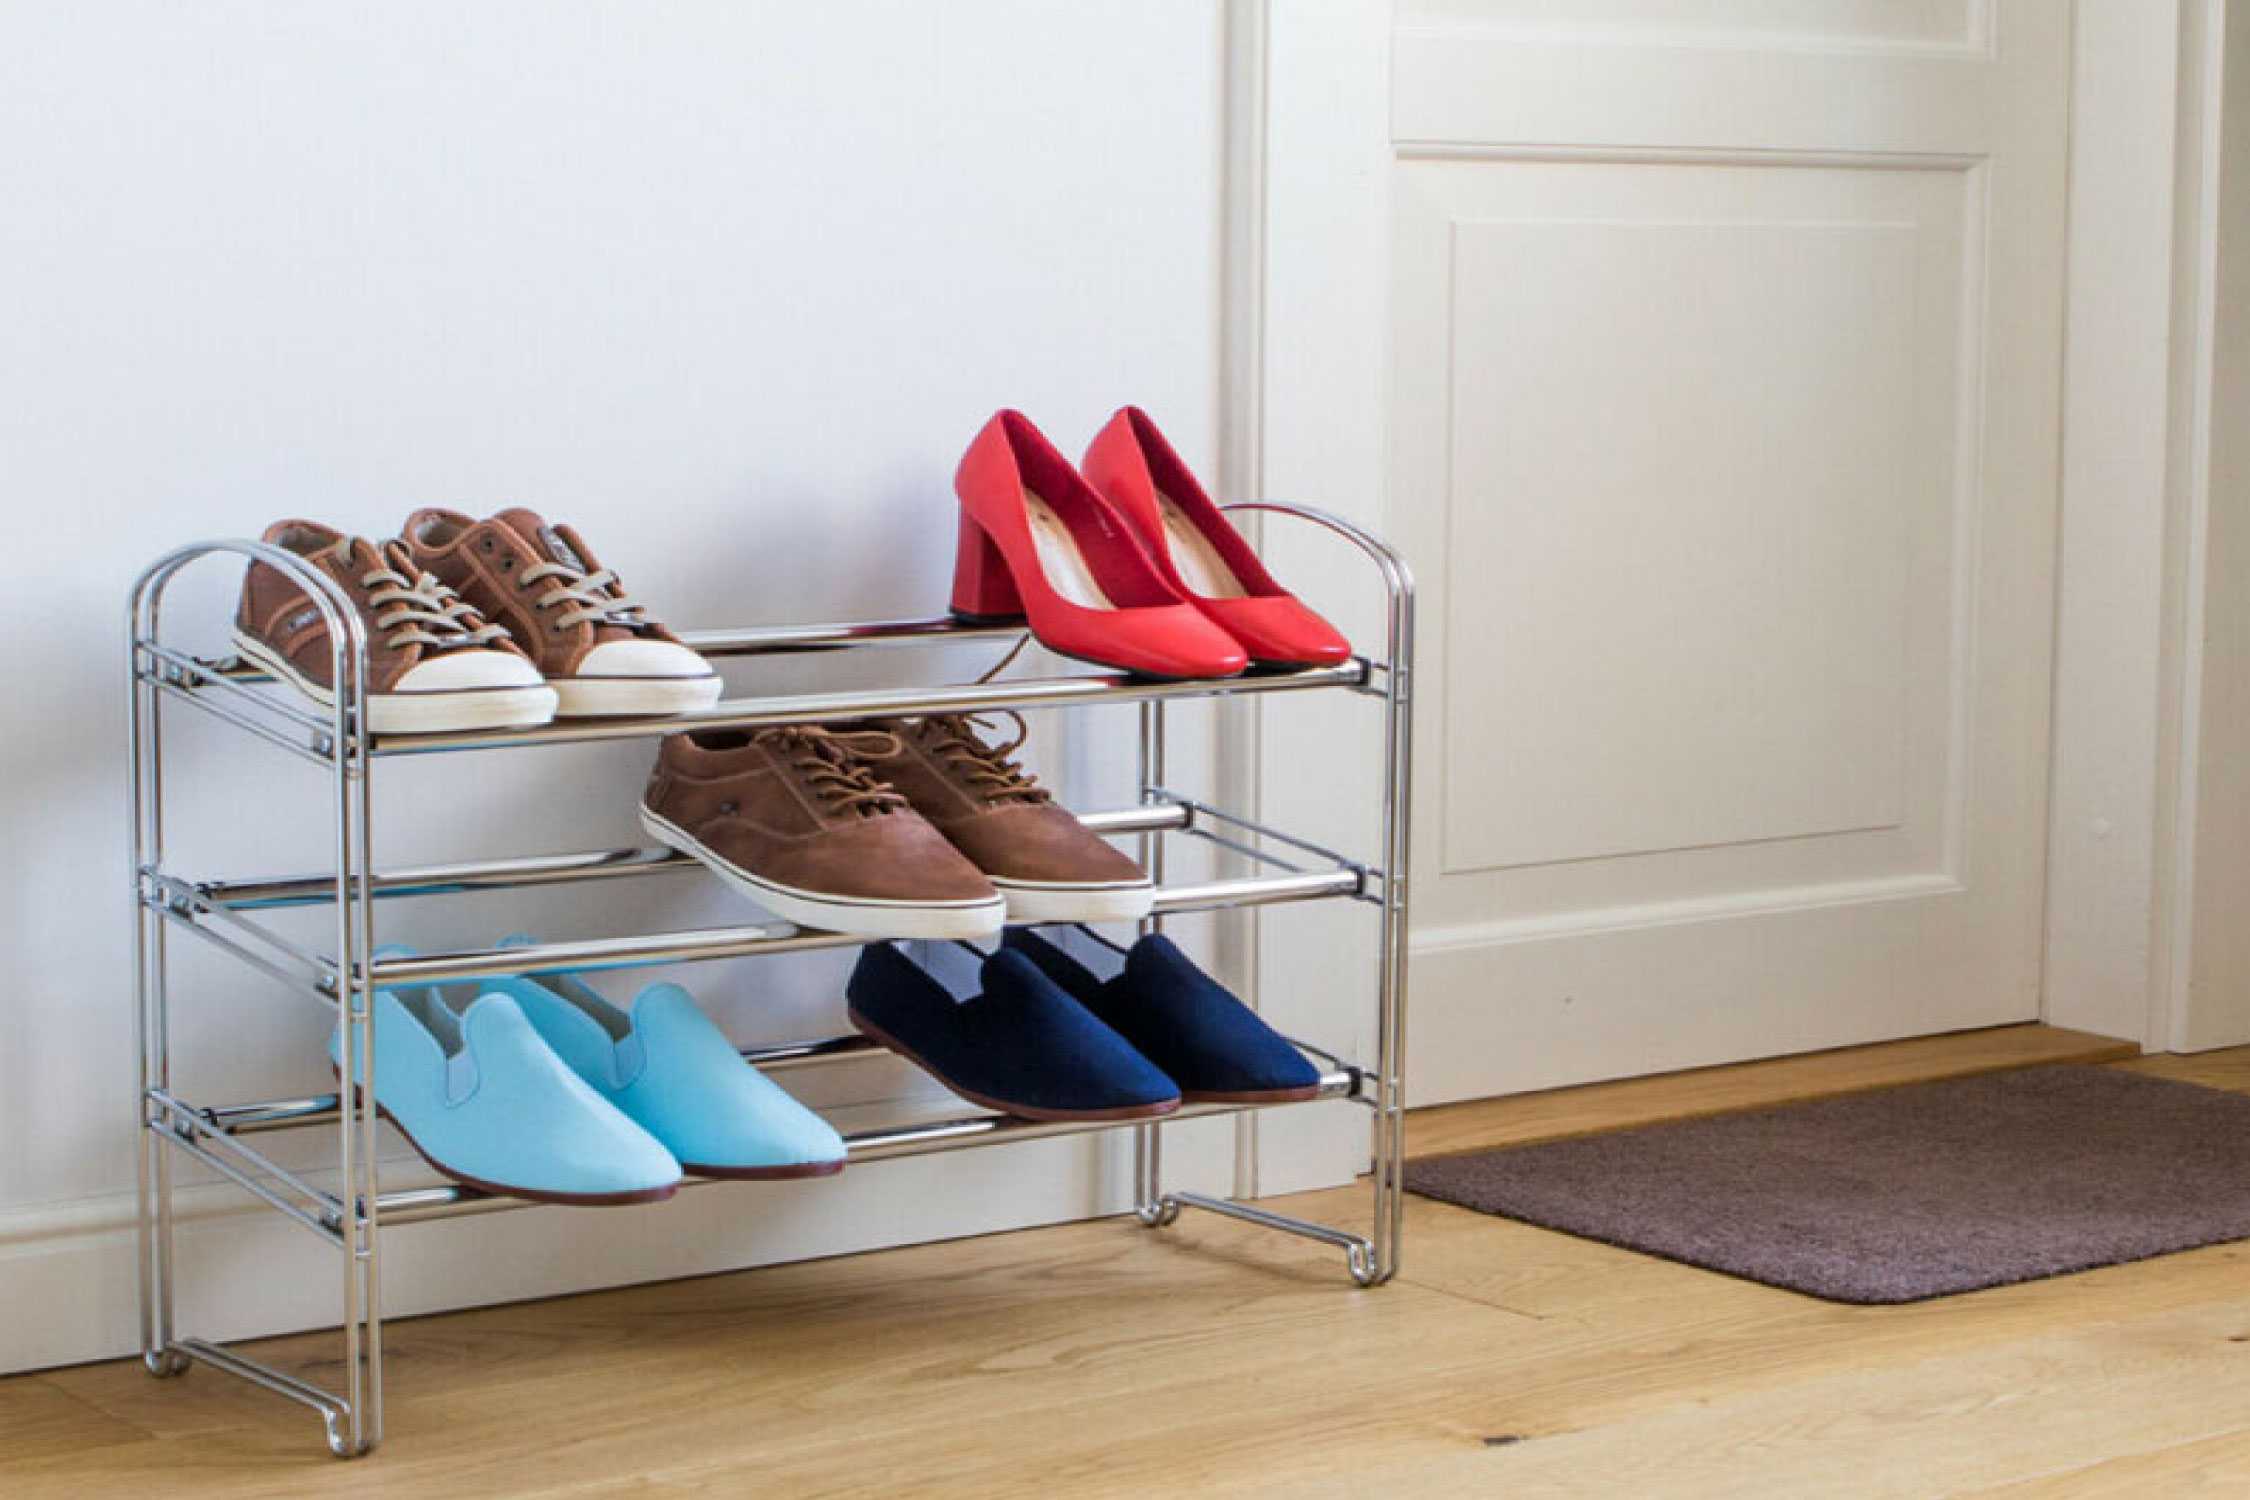 Tips - How to organize your shoes?